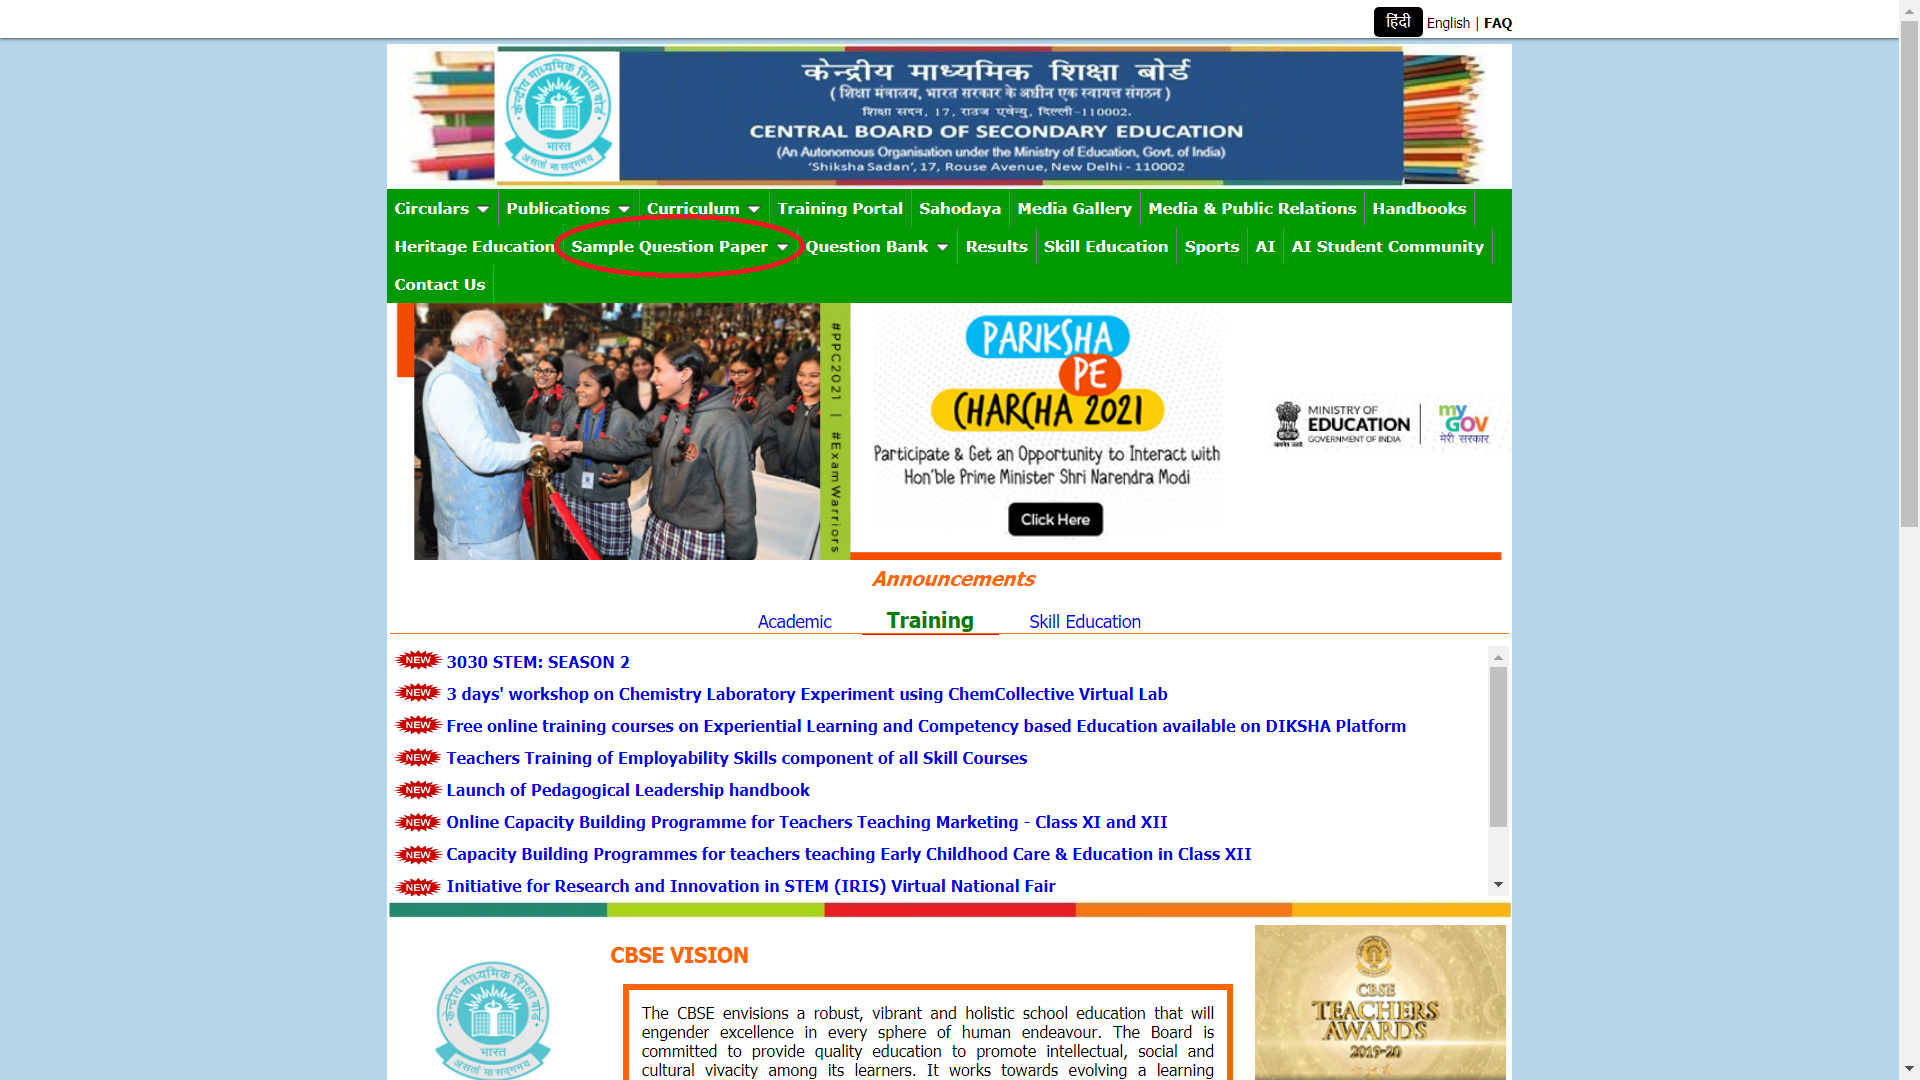 How to find CBSE sample question papers for CLASS 12 and CLASS 10